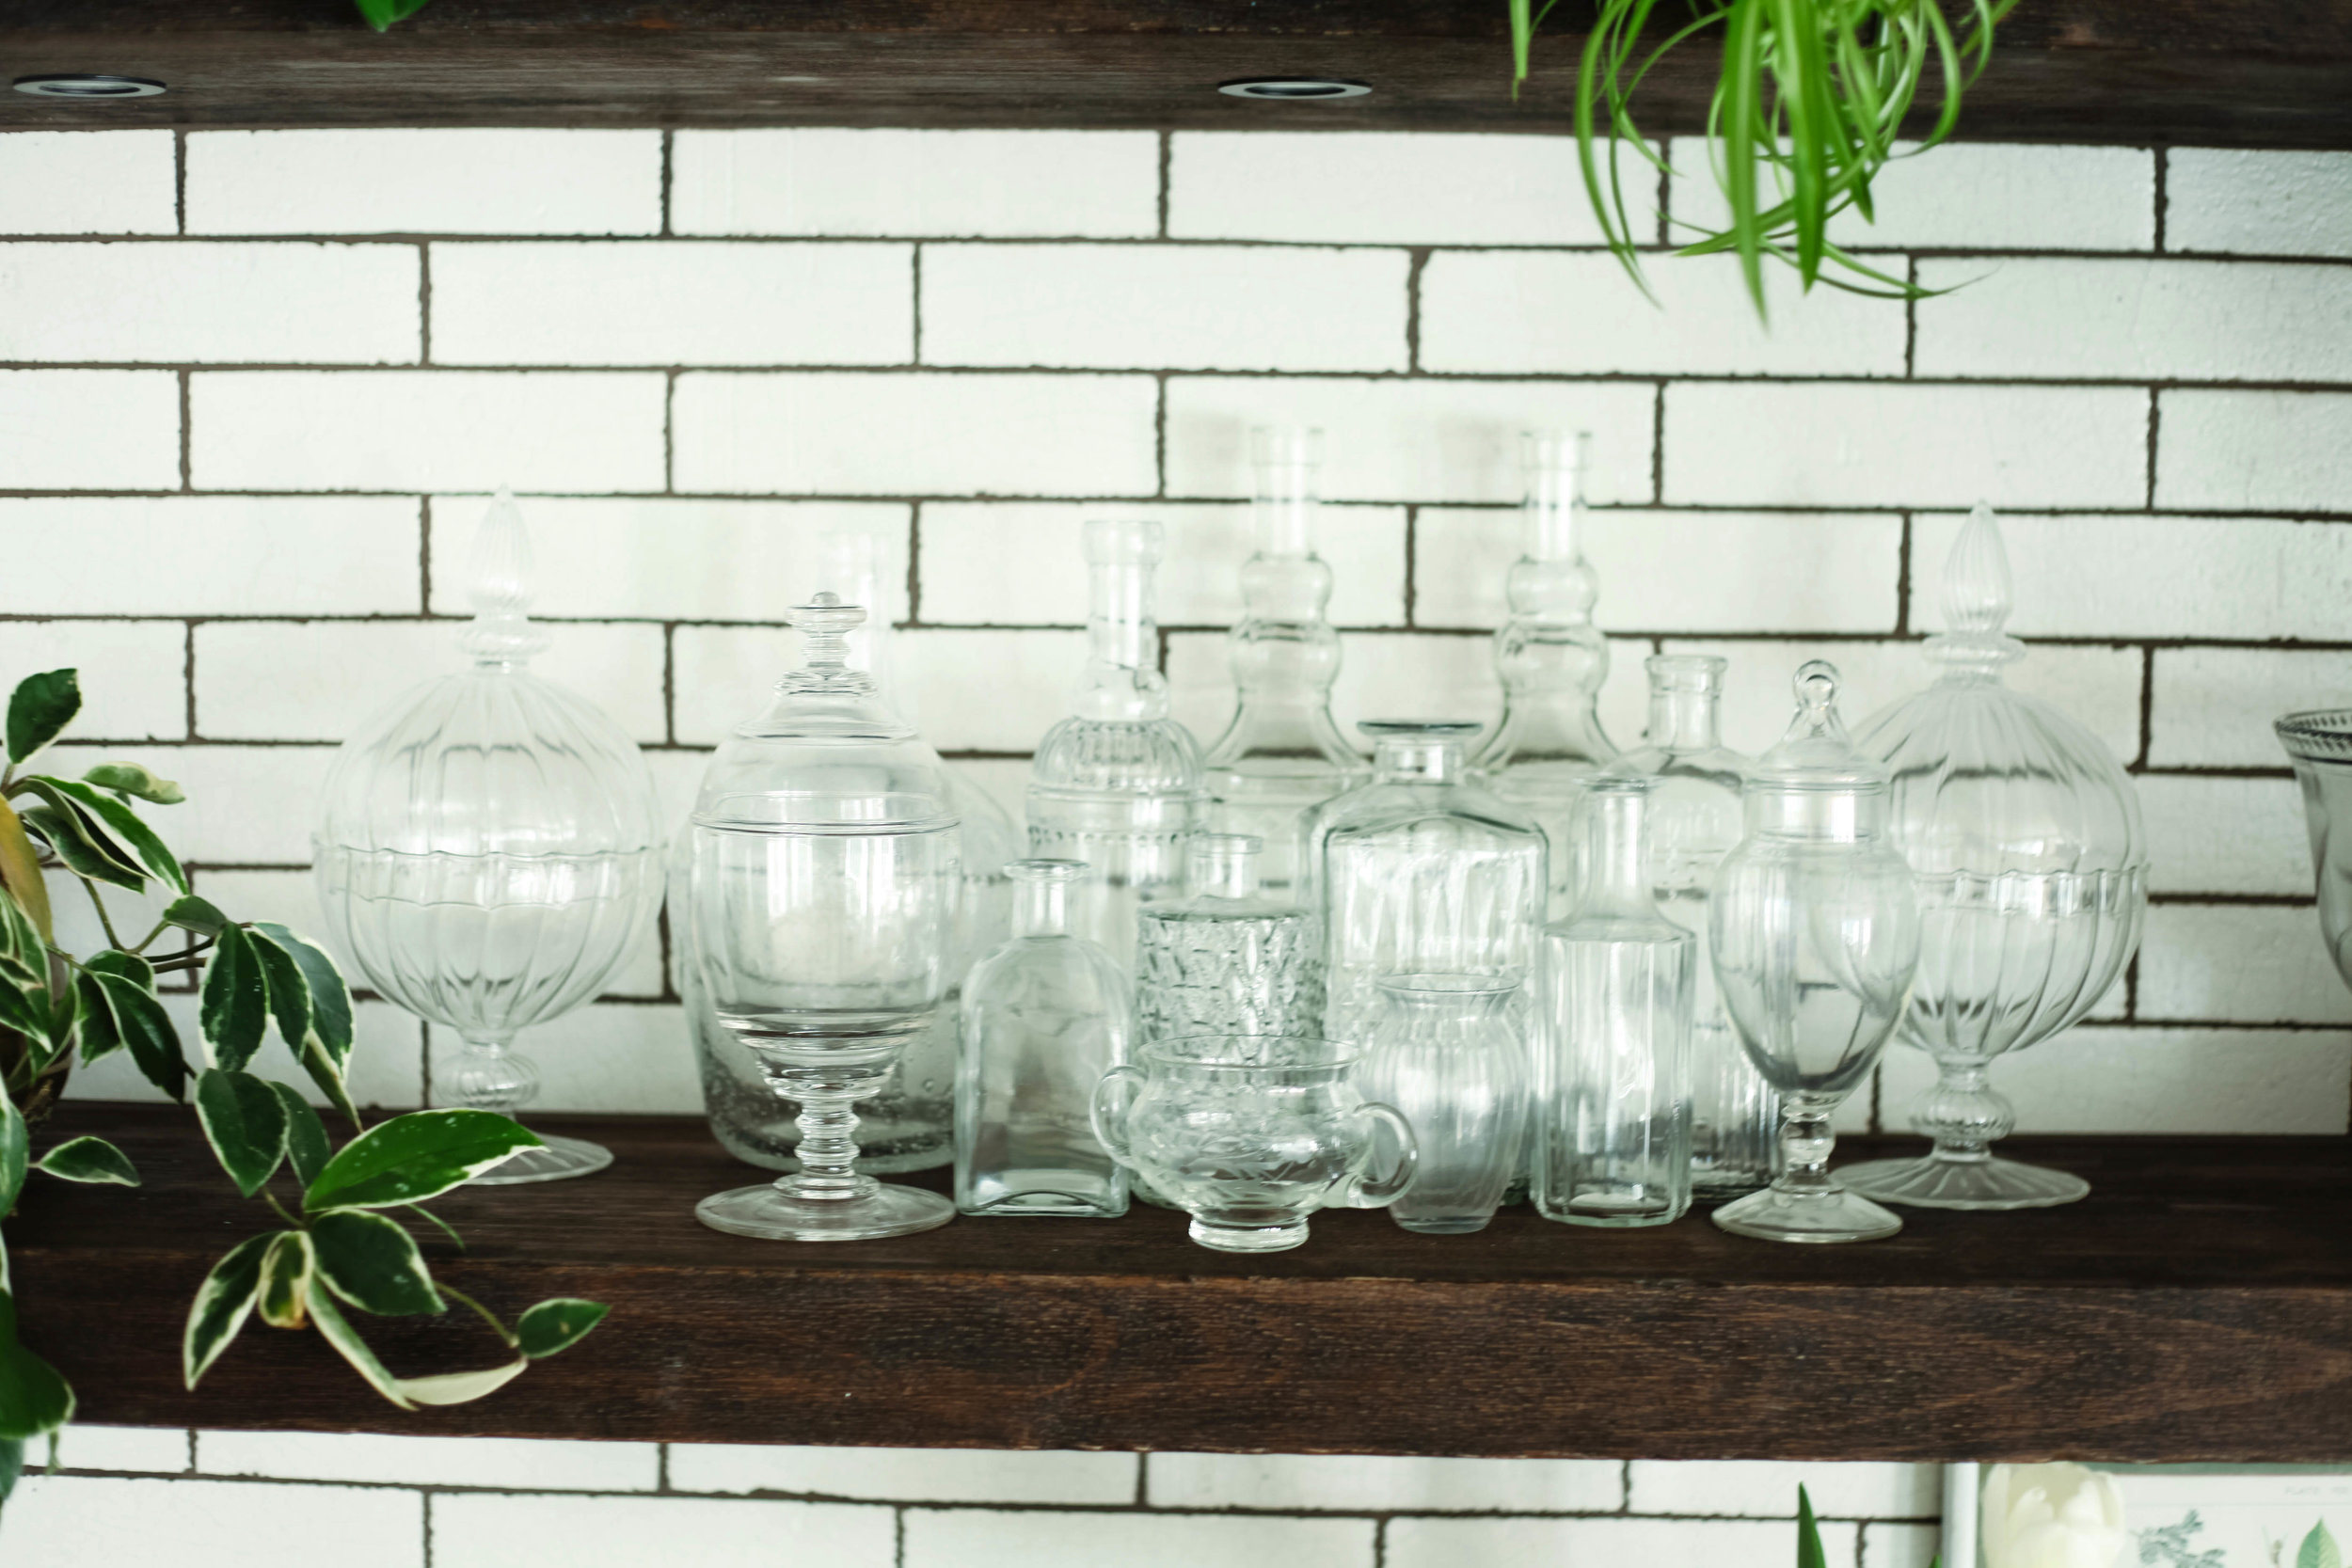 Style tip: Display a pretty collection of vintage glass bottles and vases. This adds delicate, picturesque, character and debt to a shelf.